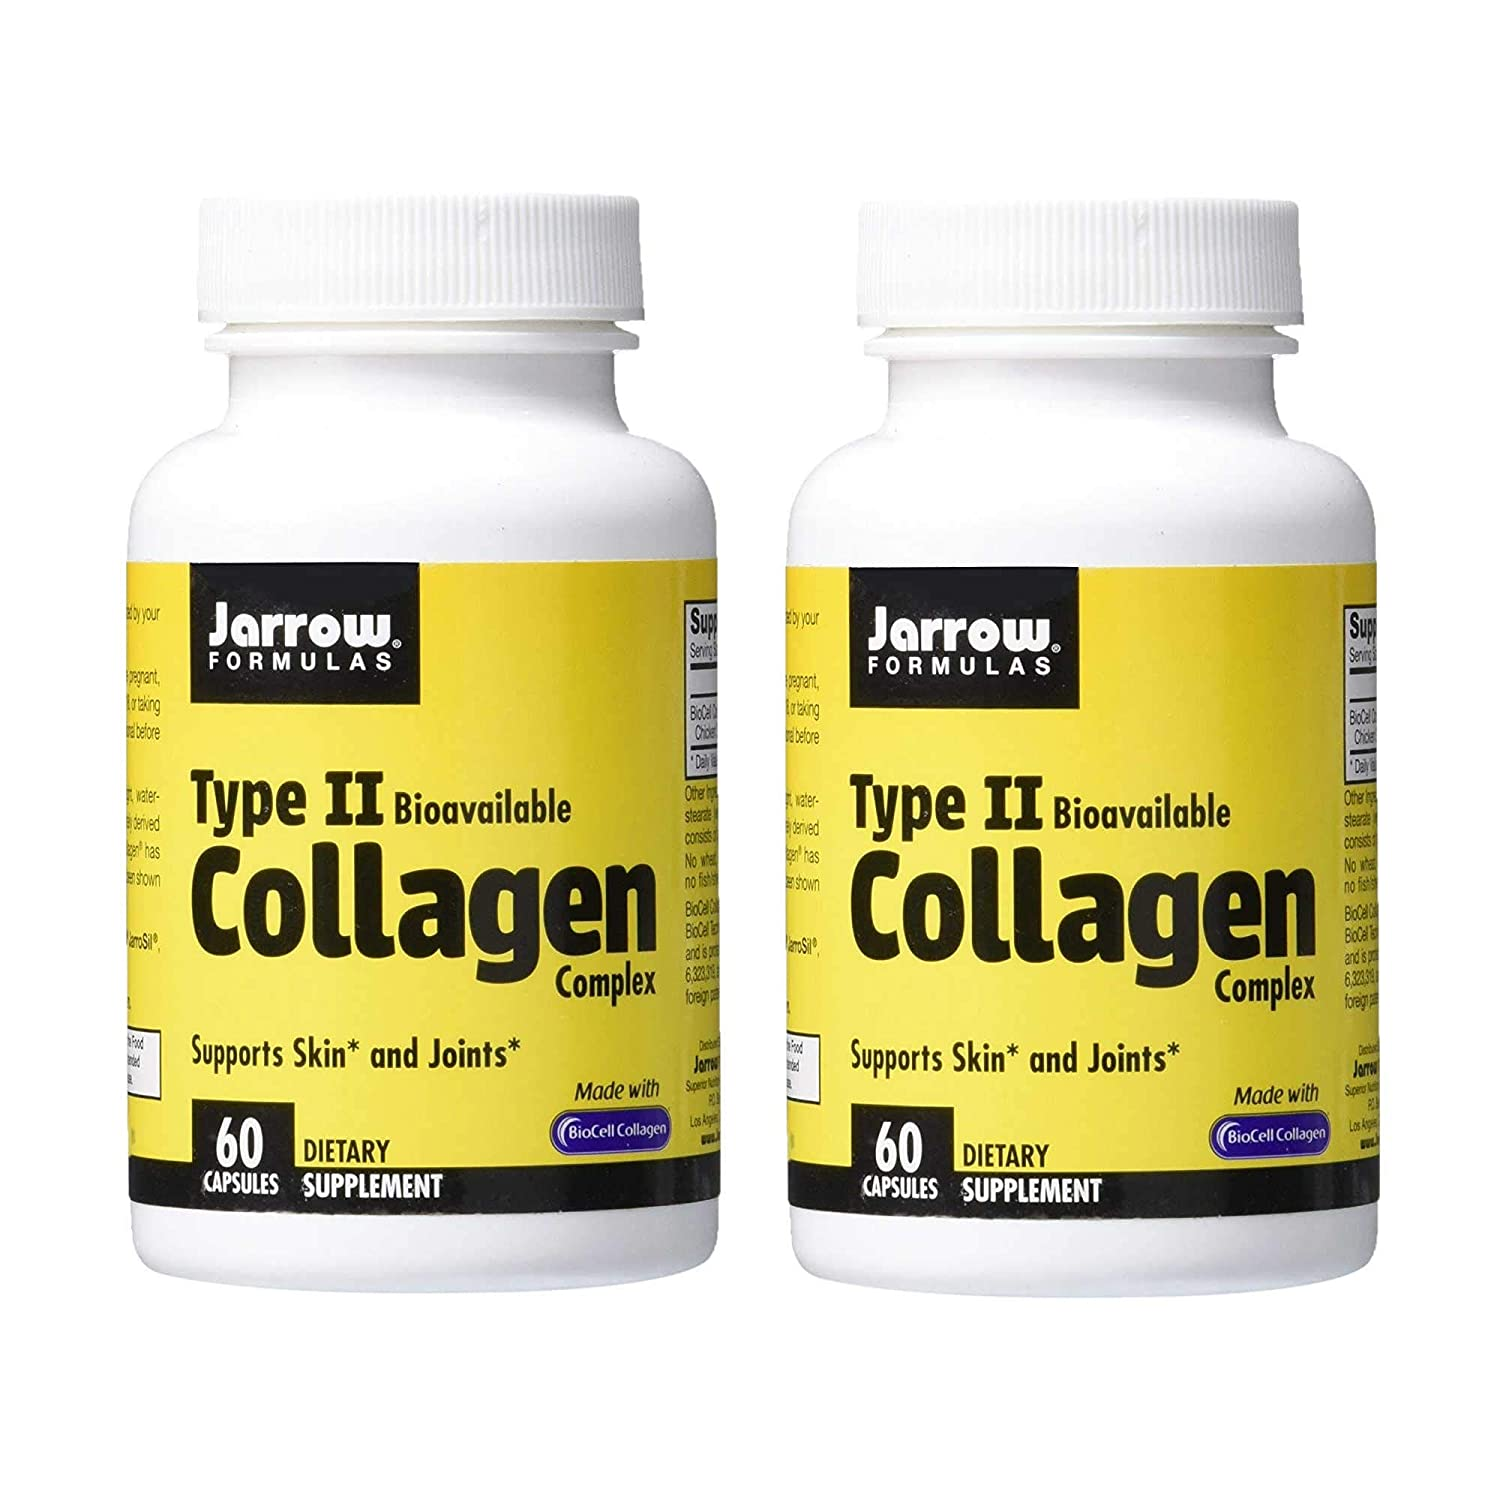 Jarrow Formulas Type II Bioavailable Collagen Complex Supports Skin and Joints Made with BioCell Collagen Dietary Supplement - 60 Capsules (Pack of 2)